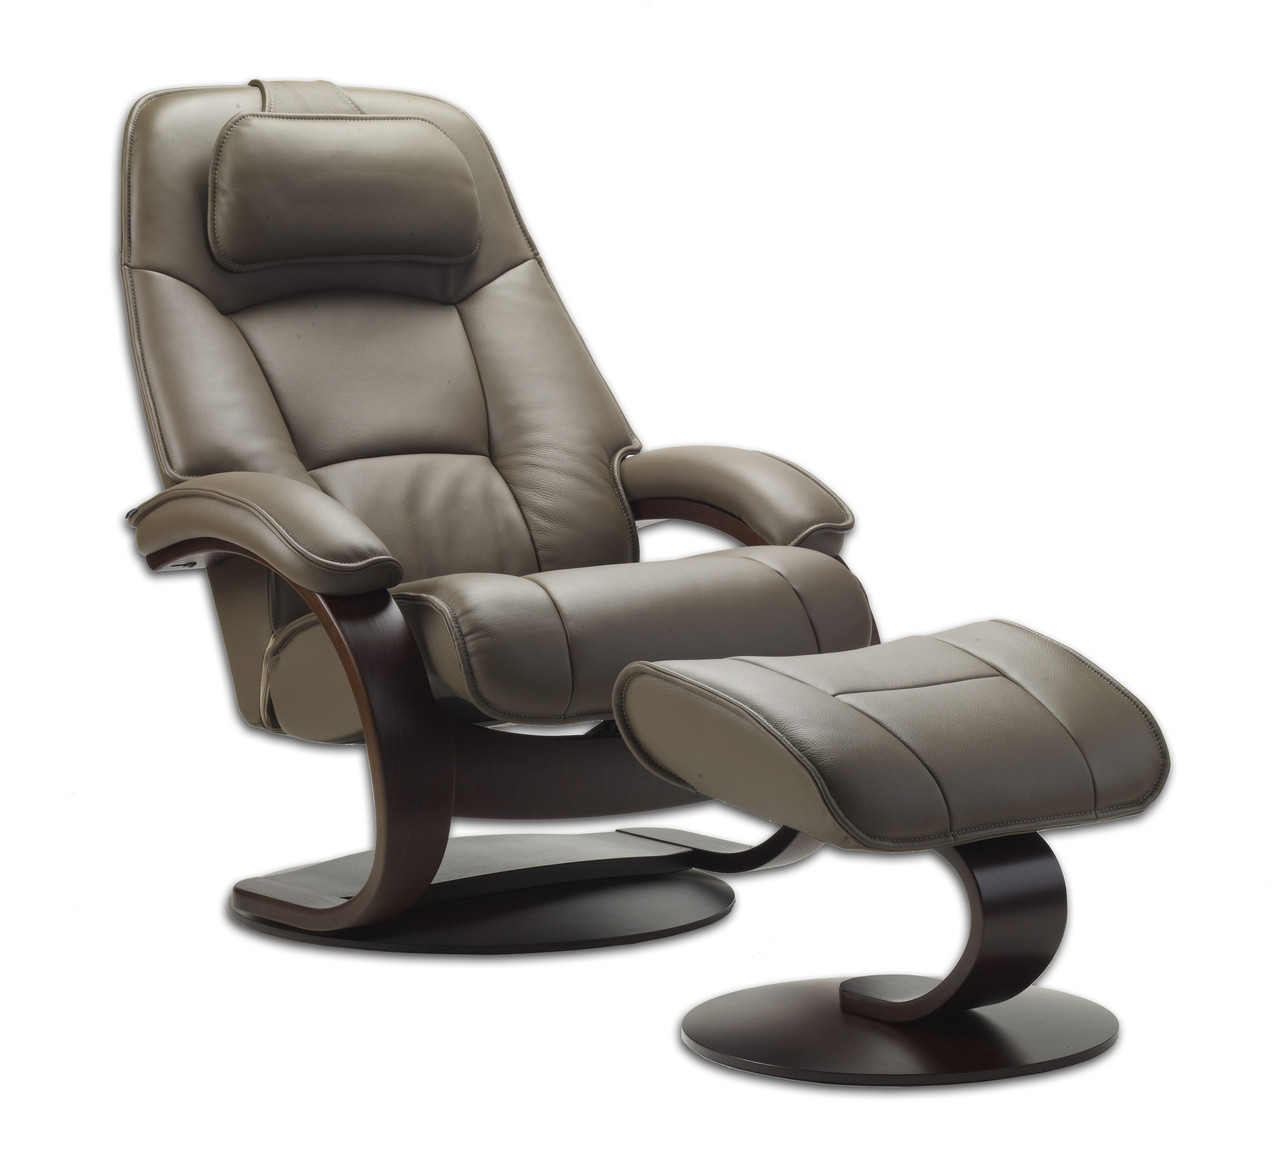 Fauteuils Relaxants Stressless Admiral Large Recliner And Ottoman With C Base Fjords